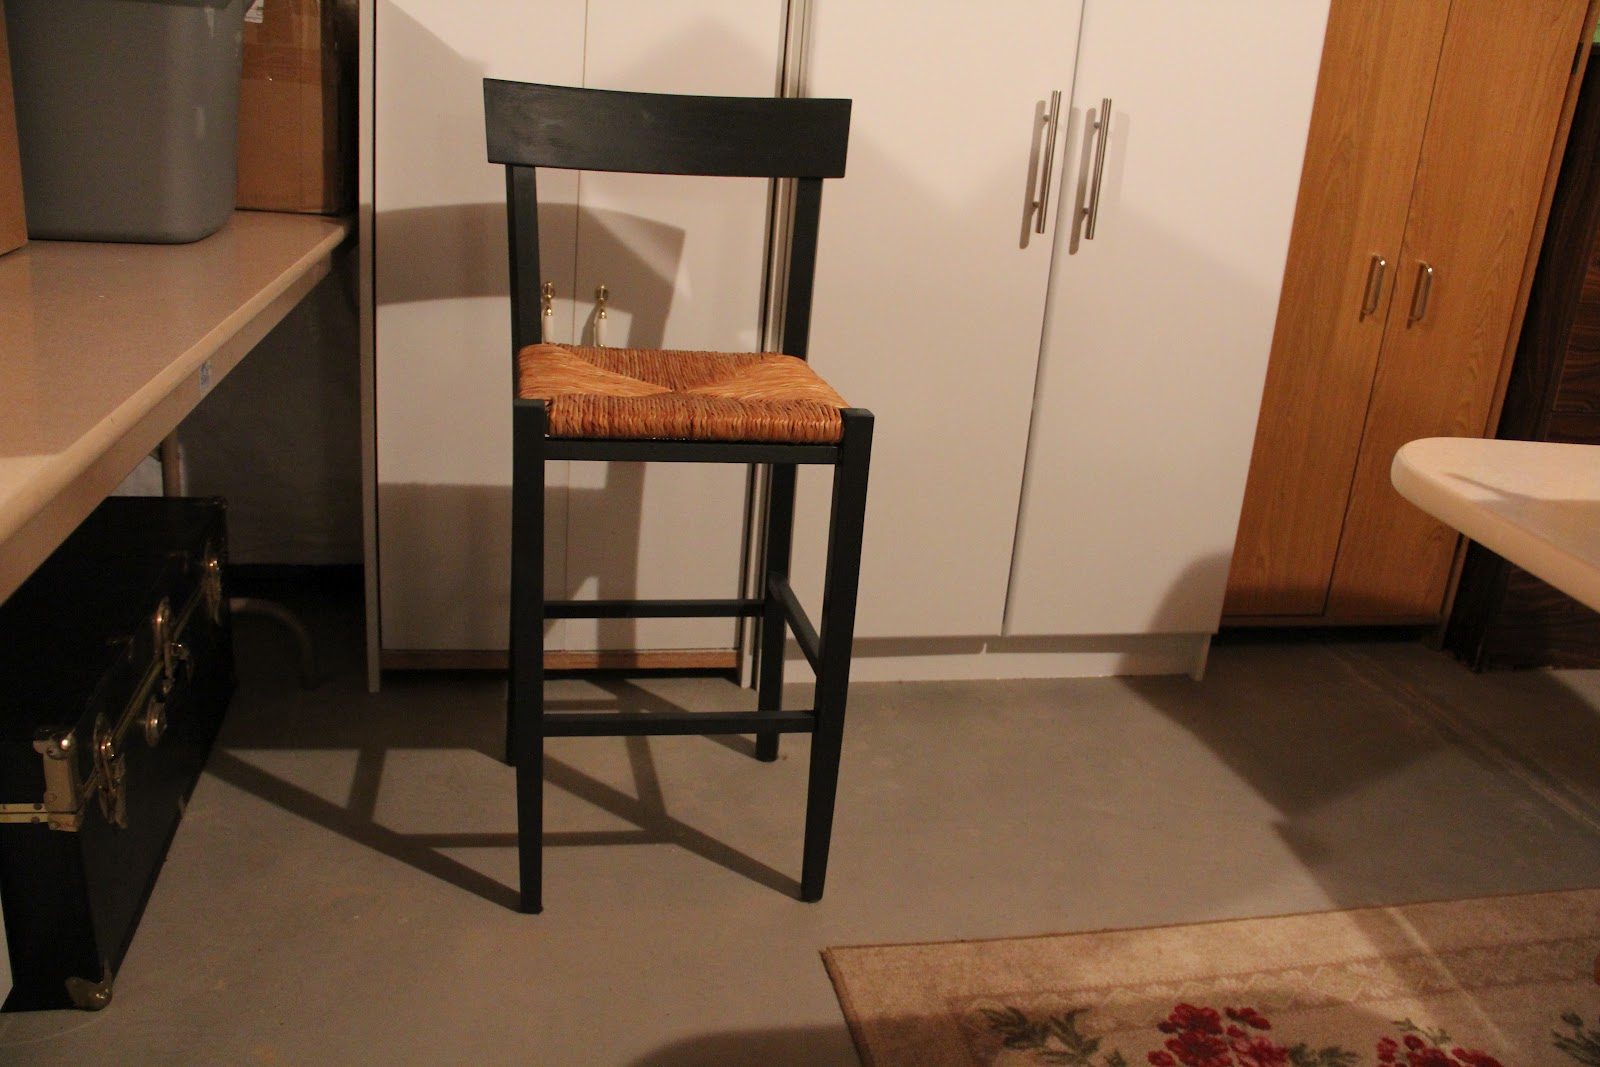 Bar Stools Hobart Why Buy It When You Can Build It